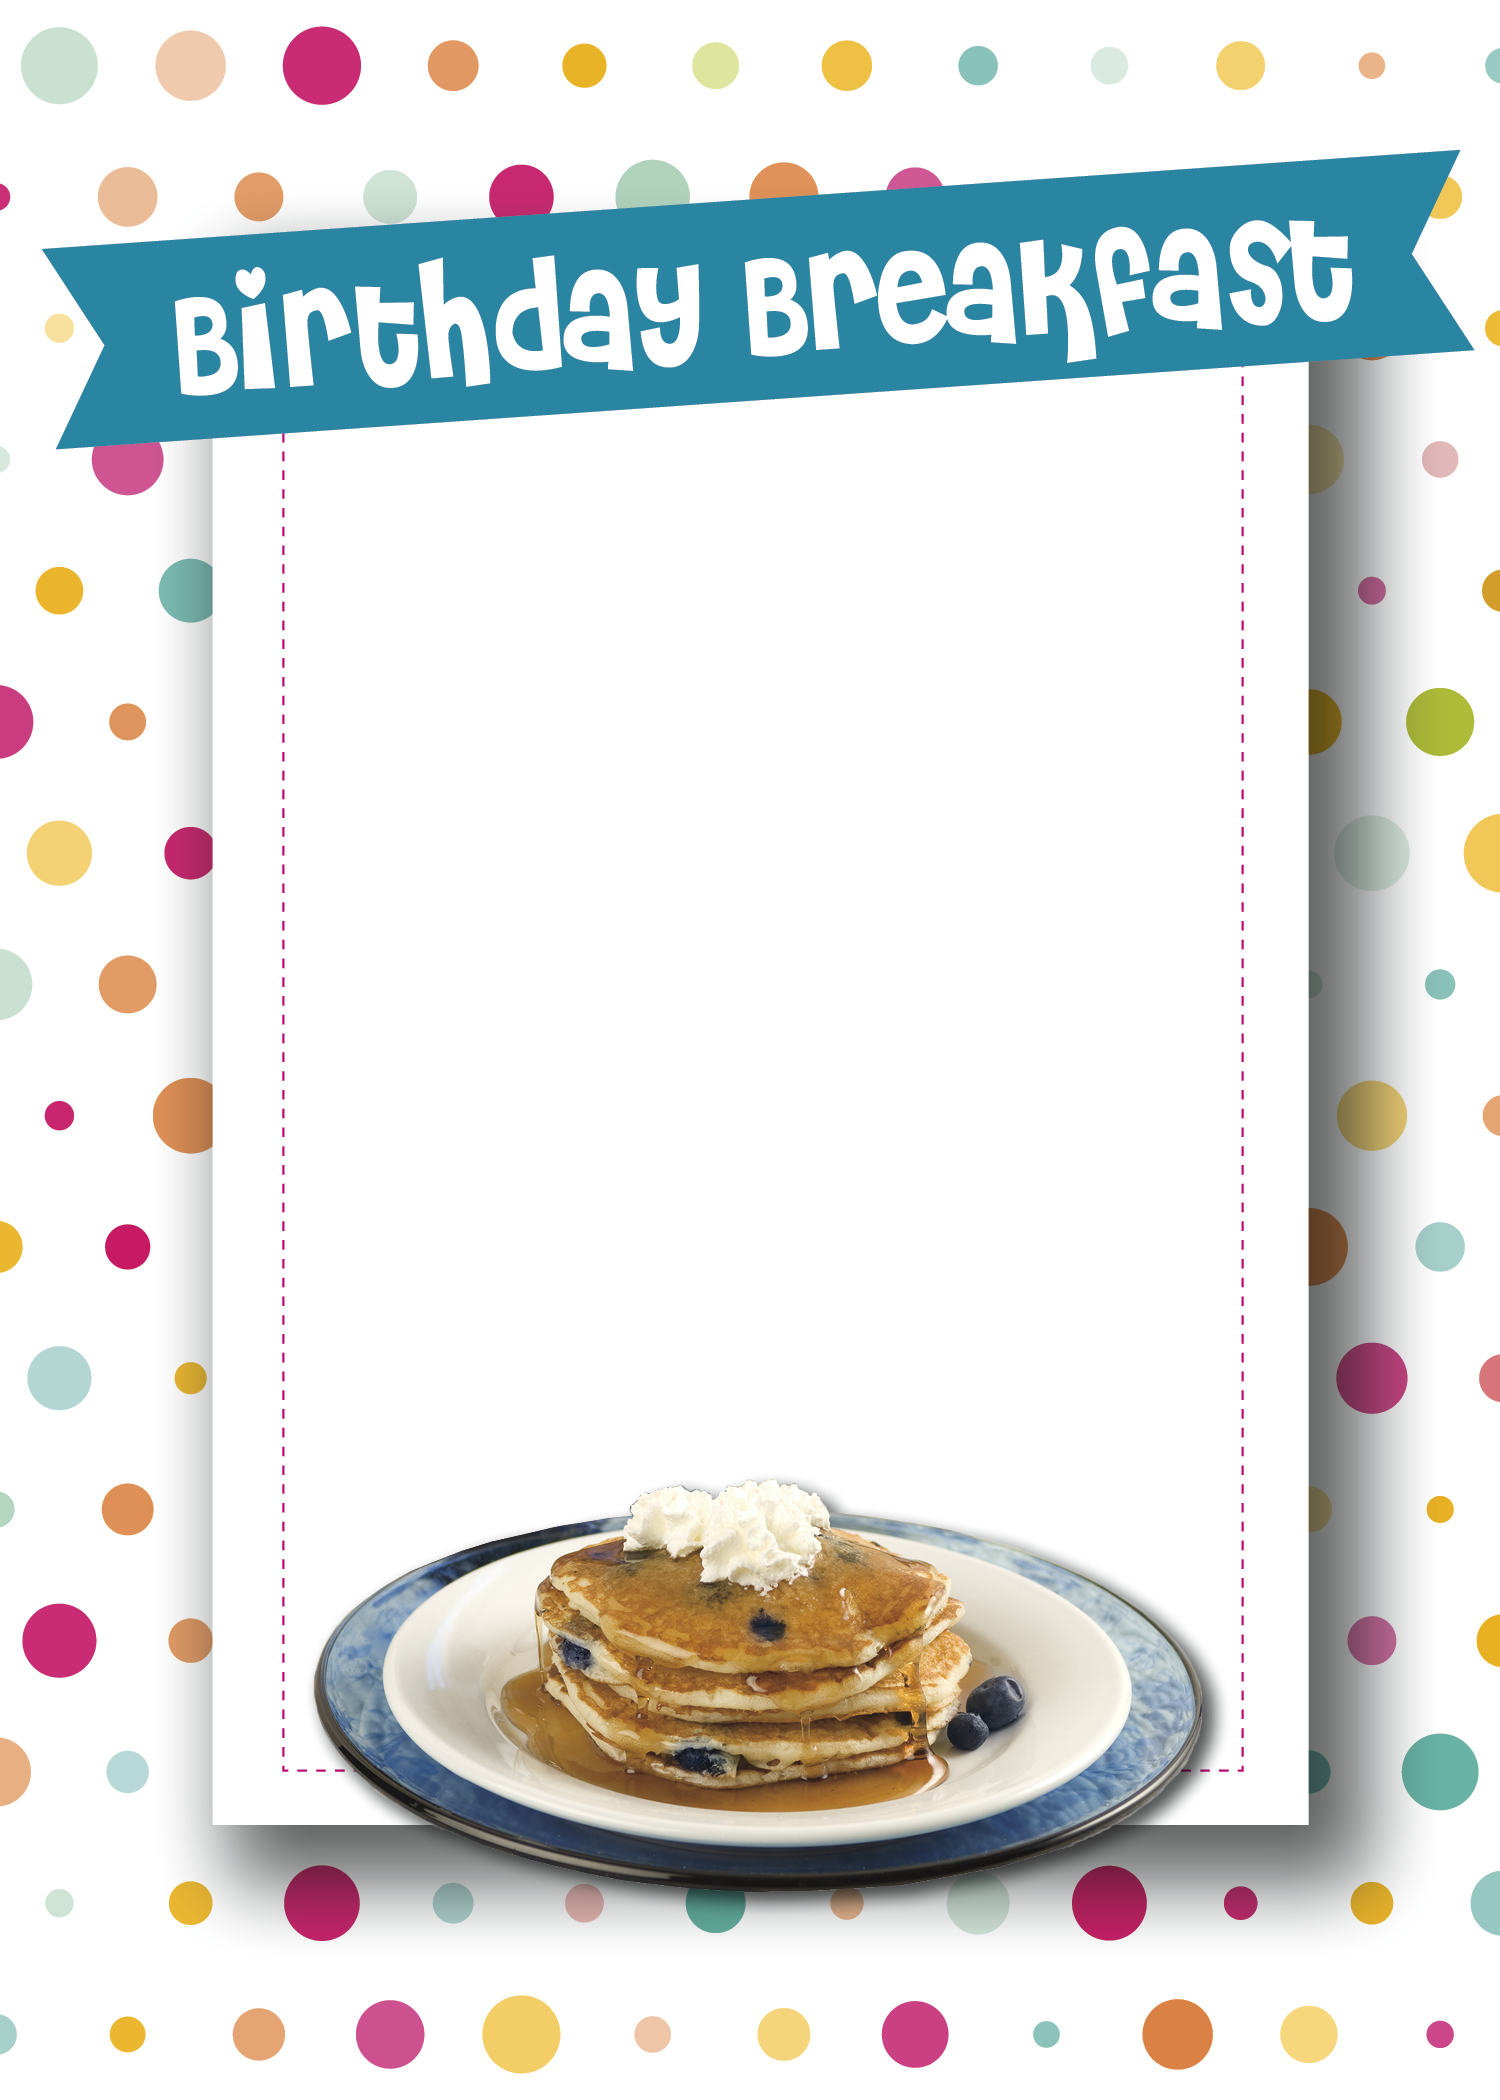 Free cliparts download clip. Clipart birthday breakfast